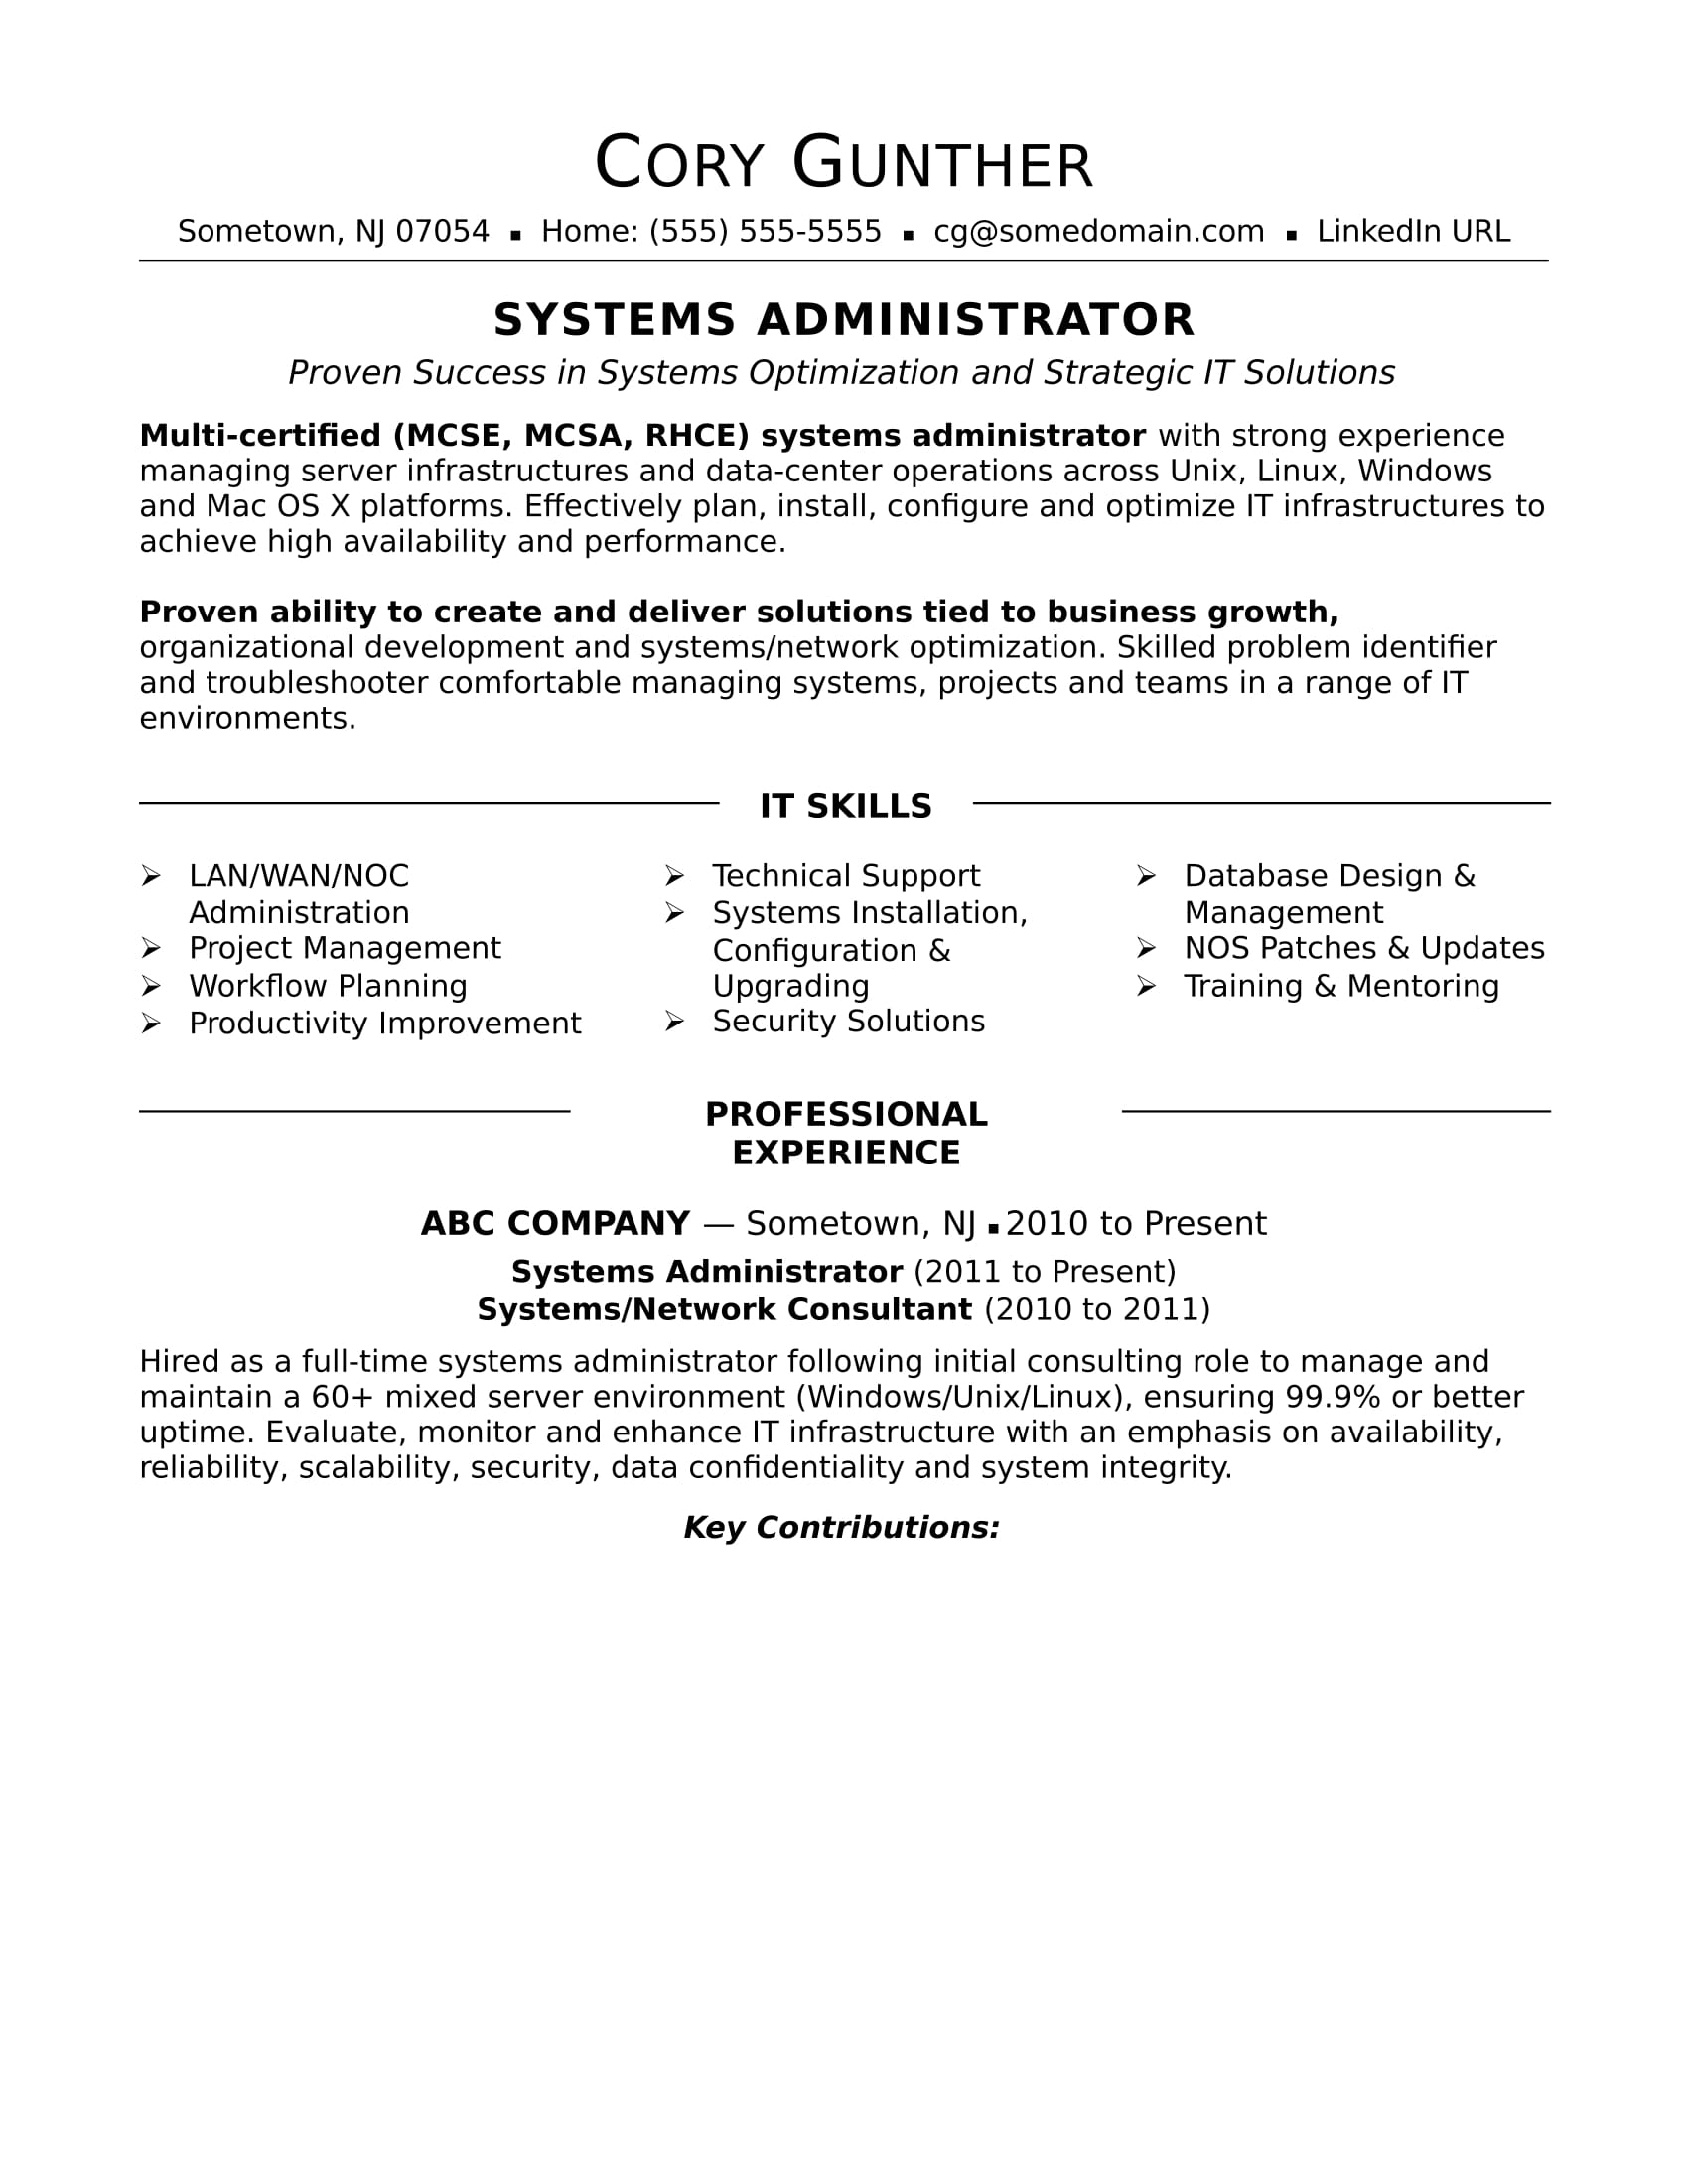 sample resume for an experienced systems administrator monster network template Resume Network Administrator Resume Template